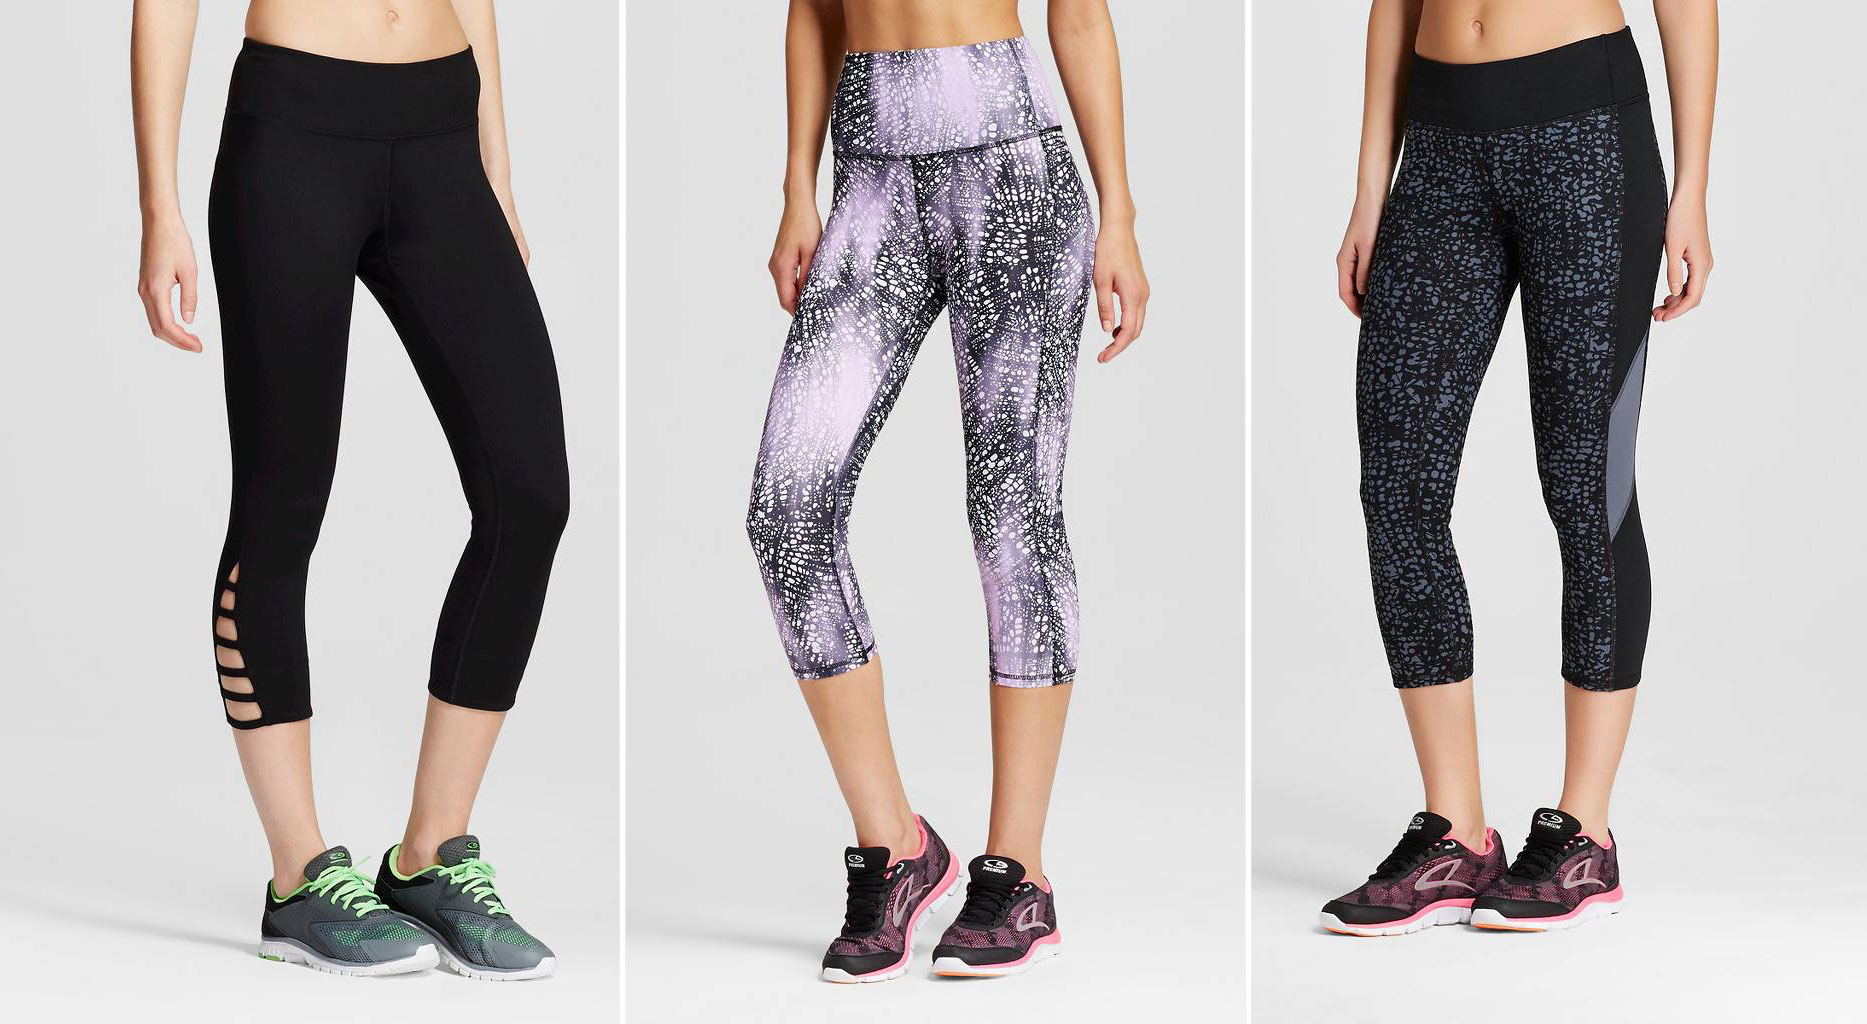 4a30b5afbcf 7 High-Performance Workout Leggings You Can Buy at Target